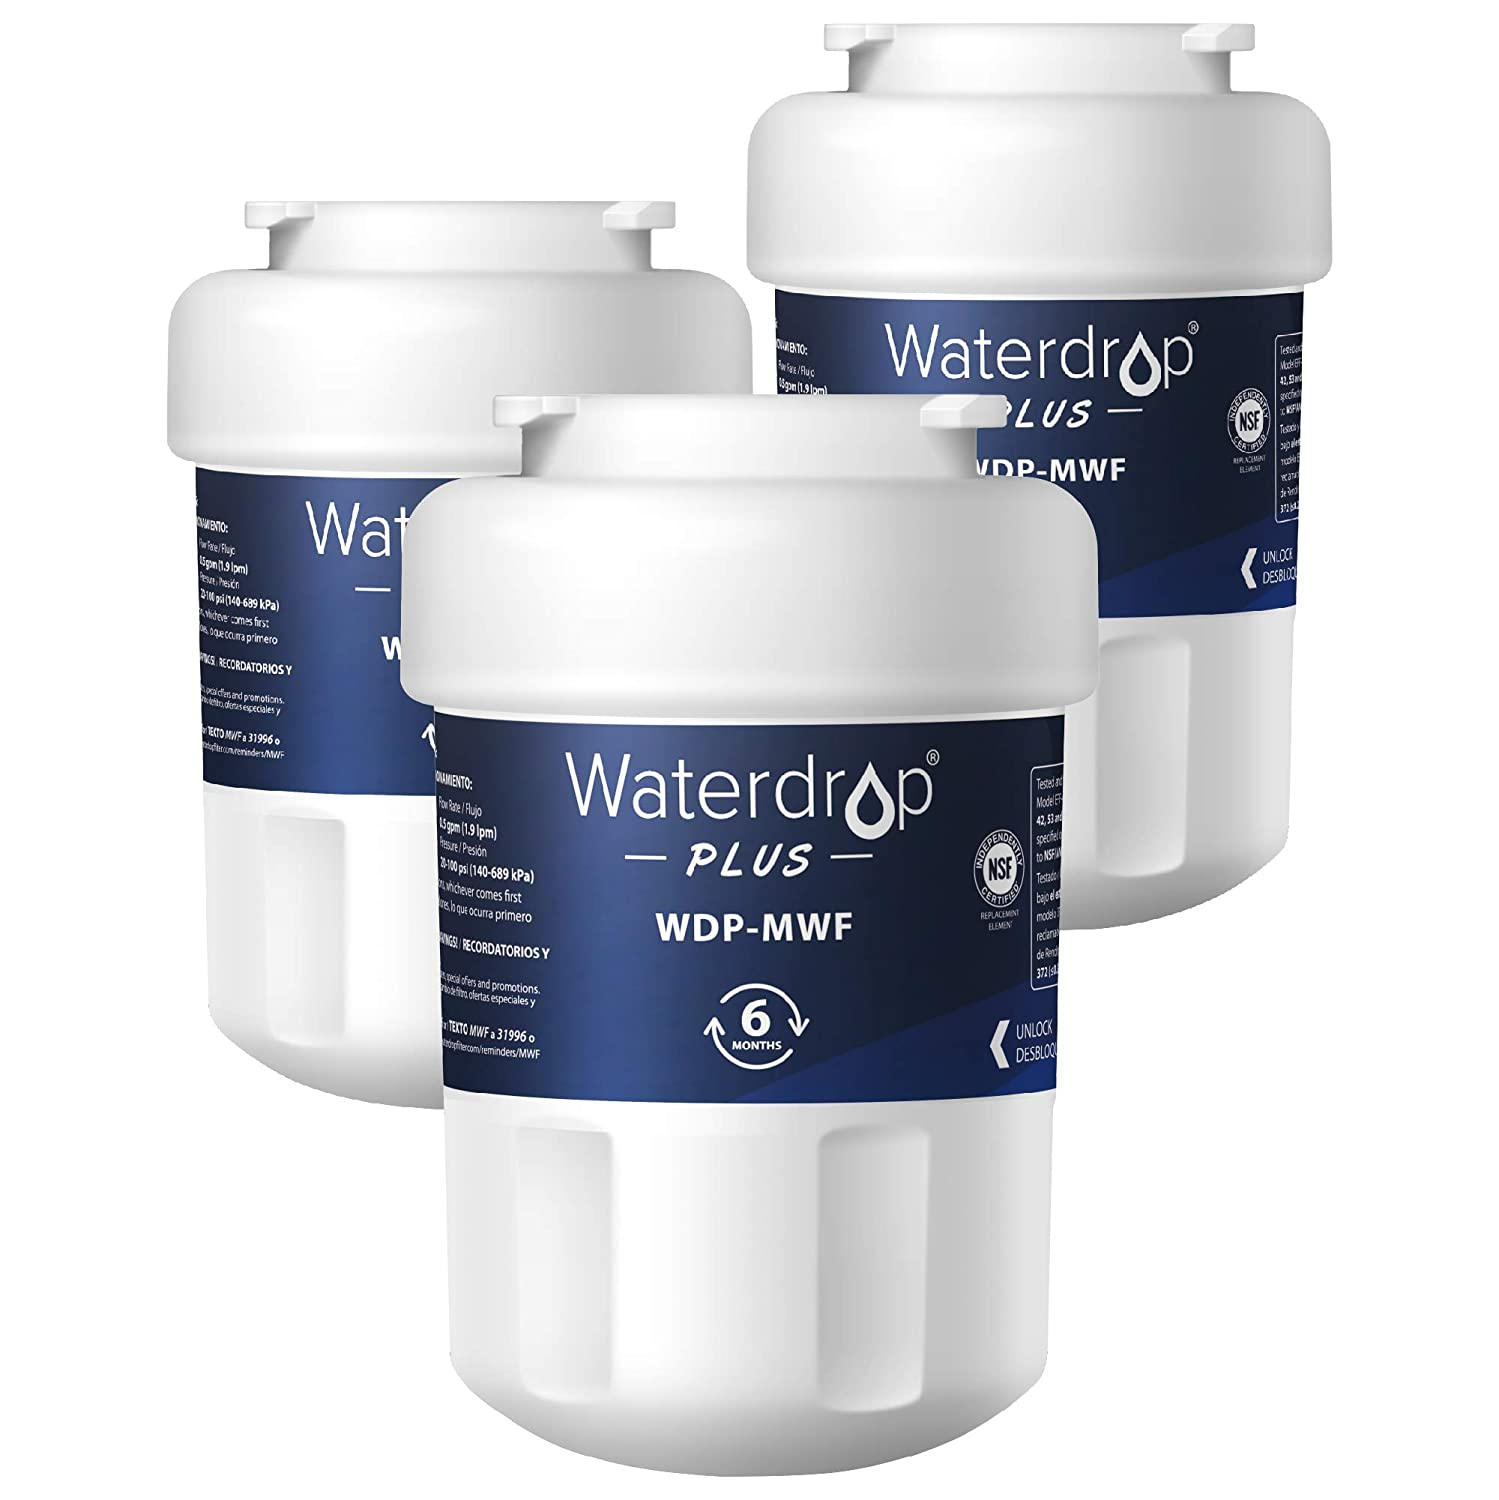 Waterdrop Plus MWF Refrigerator Water Filter, Compatible with GE SmartWater MWF, MWFINT, MWFP, MWFA, GWF, HDX FMG-1, GSE25GSHECSS, WFC1201, RWF1060, Kenmore 9991, Reduces Lead, NSF 401&53&42, 3 Pack